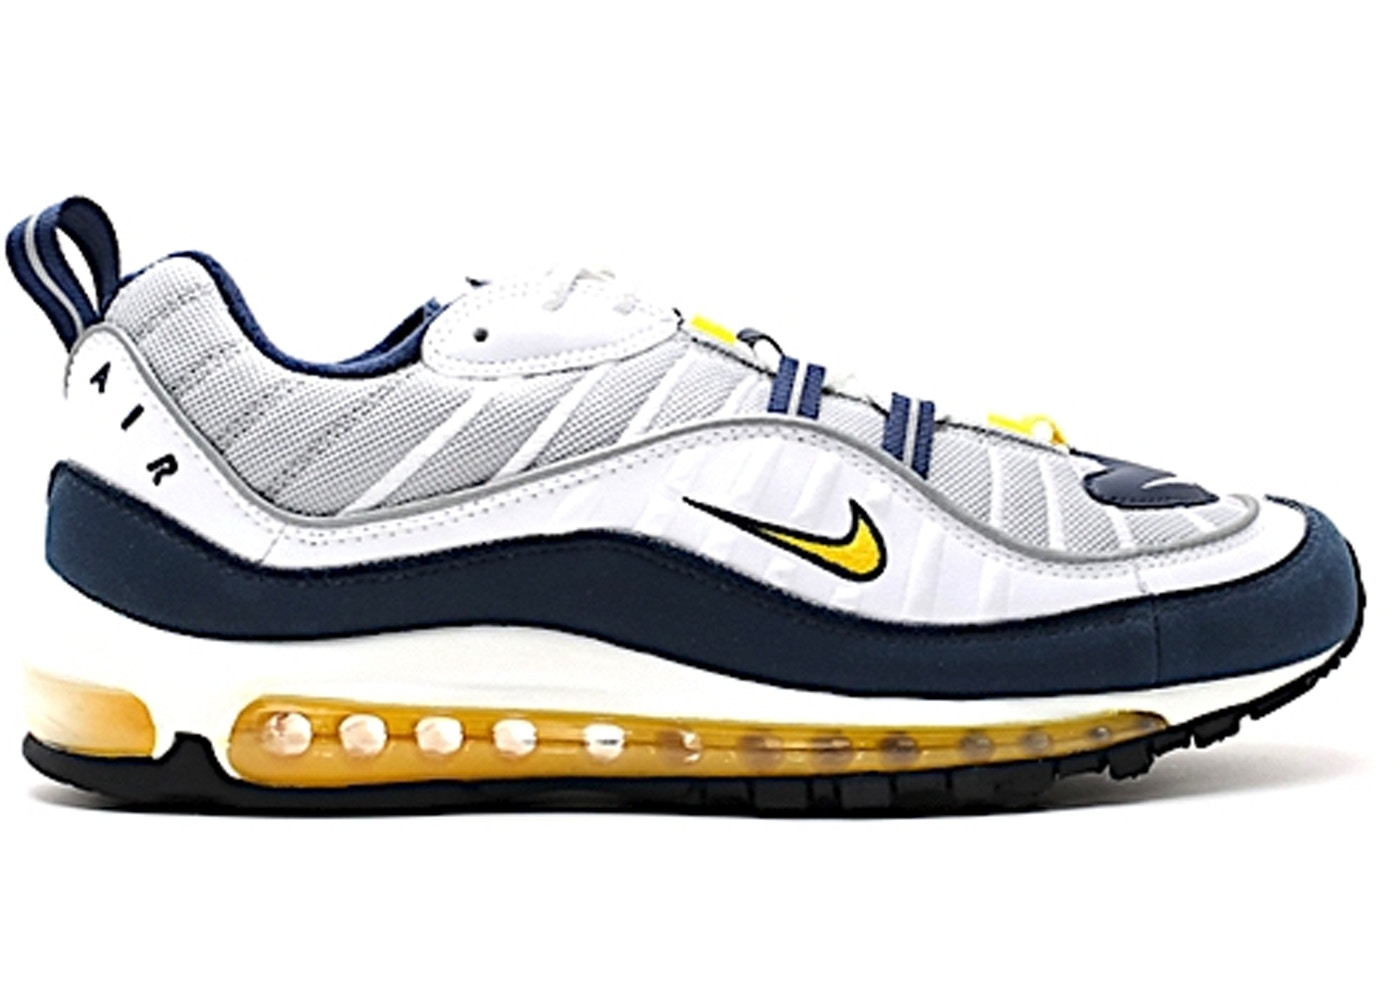 best authentic 109a5 fba2b Air Max 98 Tour Yellow